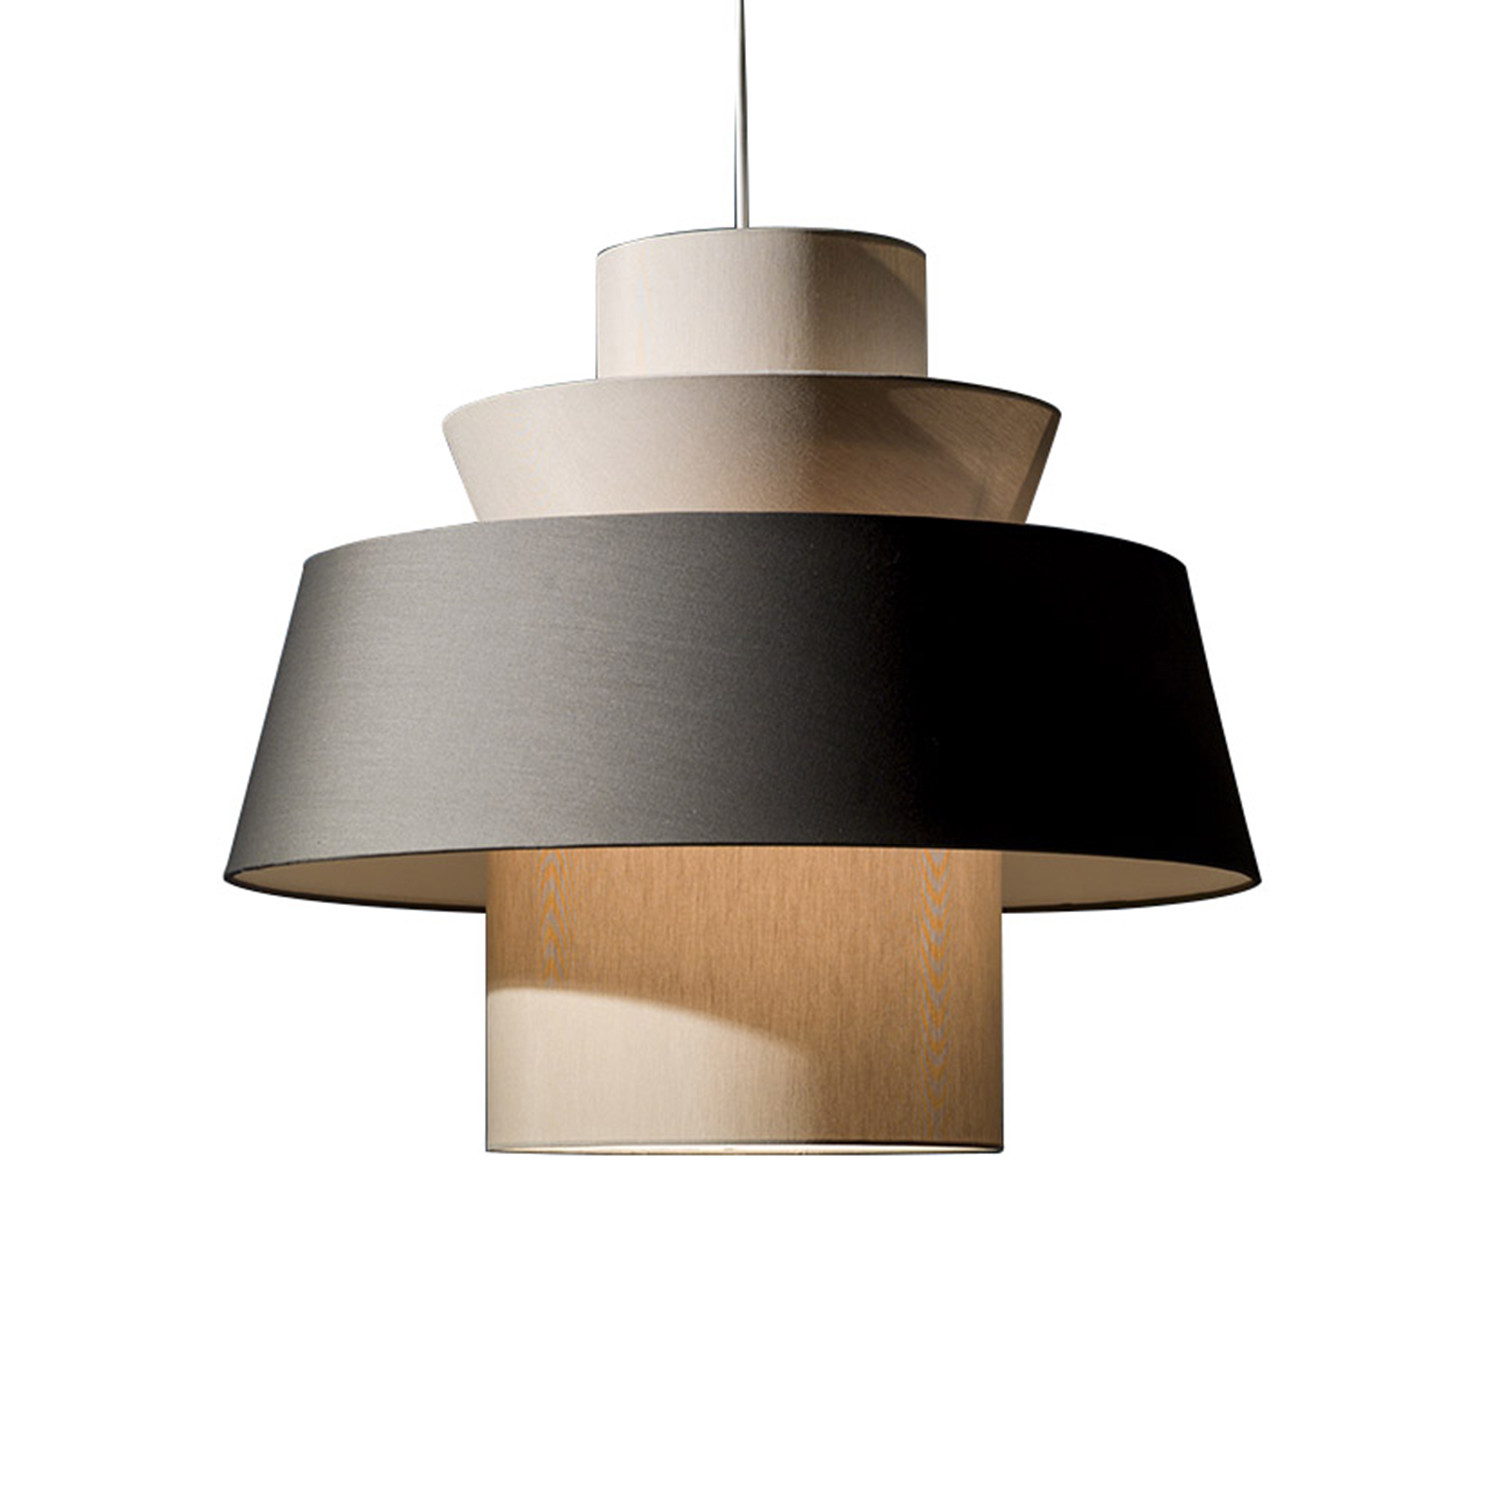 Fpn Paralumi Pluto Fpn Creative Lighting Touch Of Modern